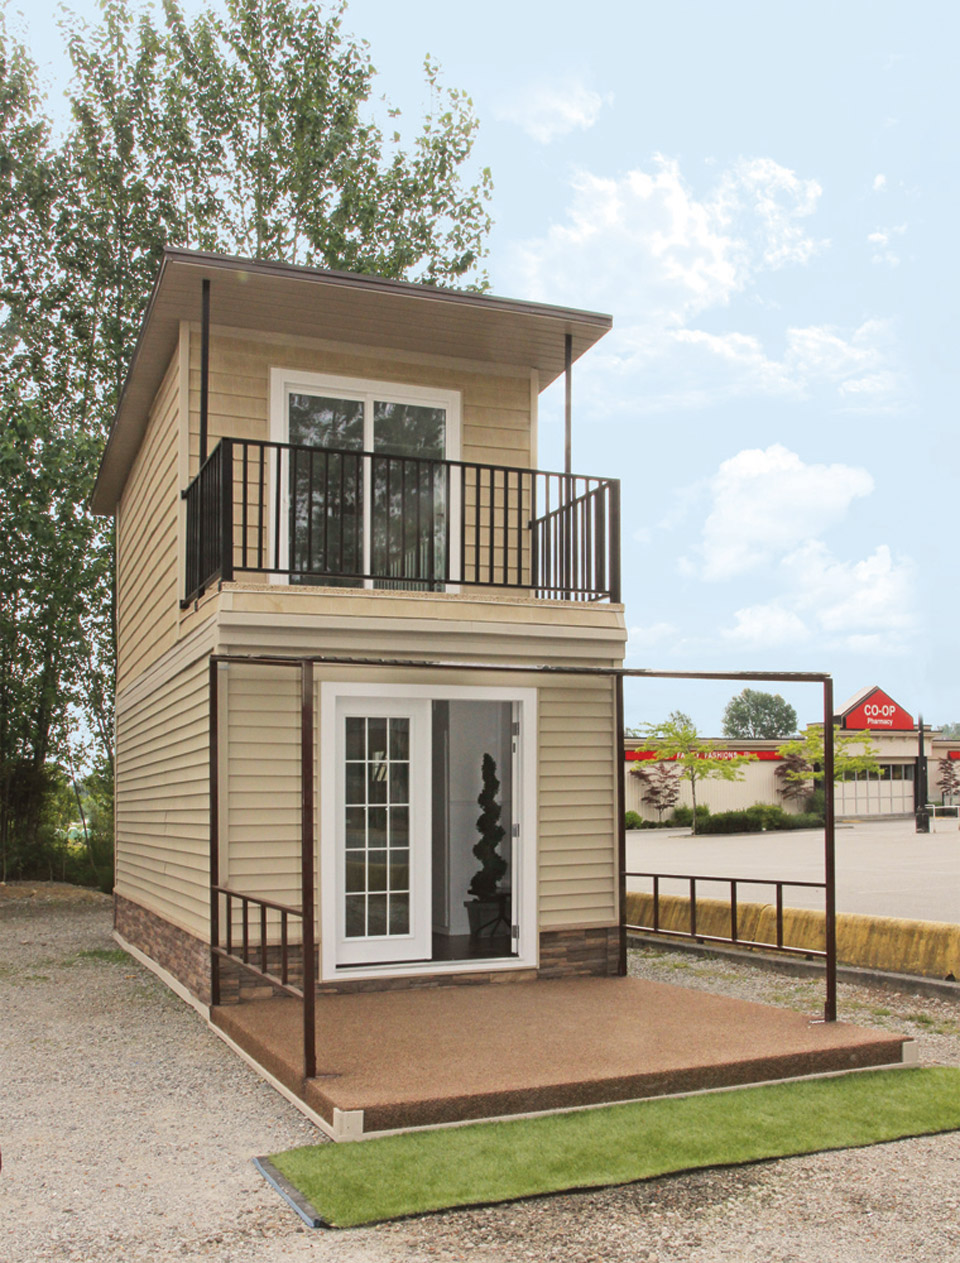 The eagle 1 a 350 sq ft 2 story steel framed micro home for Small house design